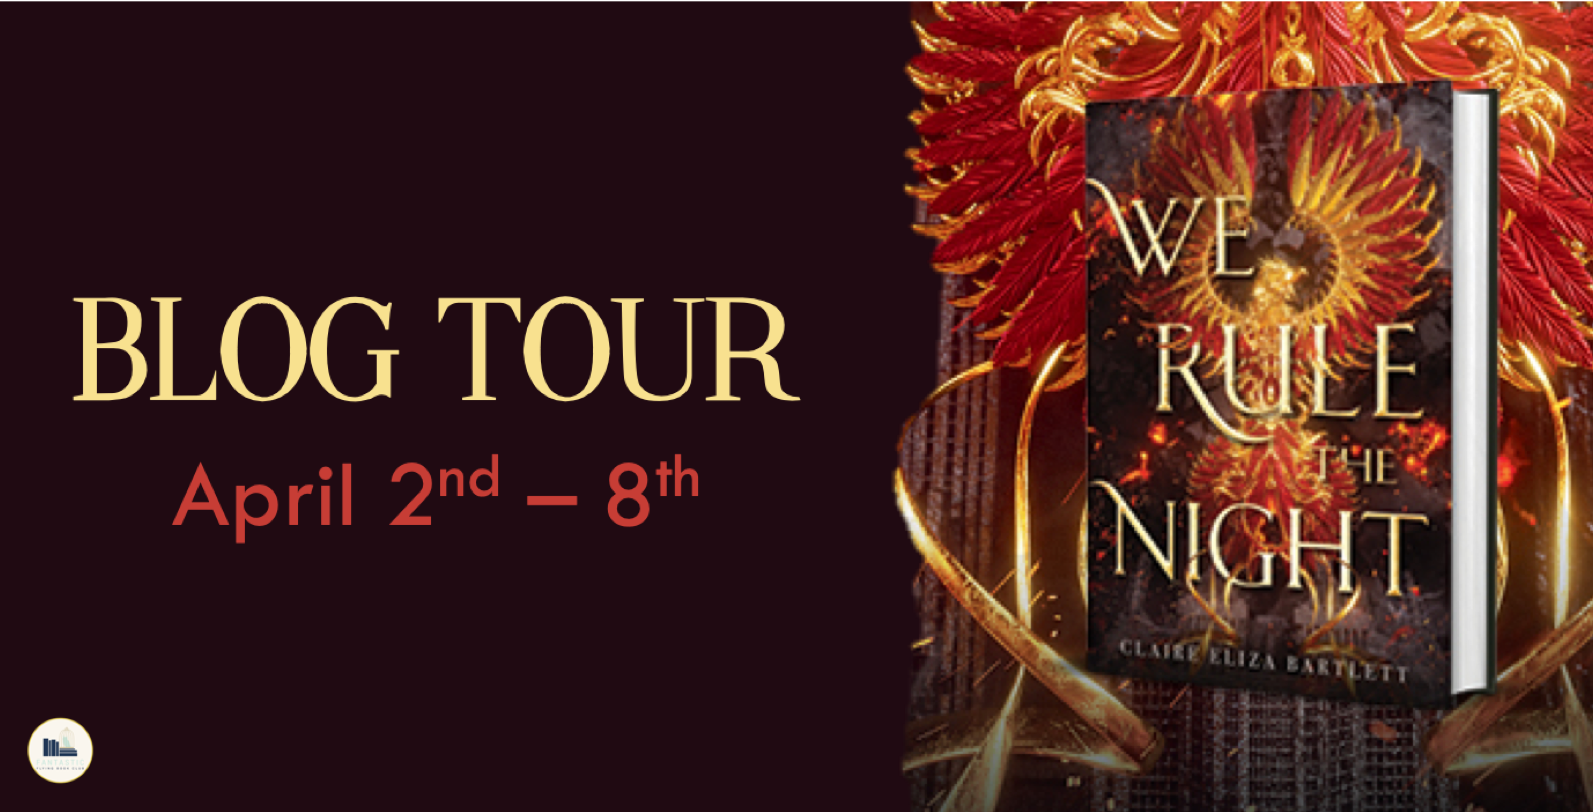 Blog Tour: We Rule the Night by Claire Eliza Bartlett (Interview + Giveaway!)